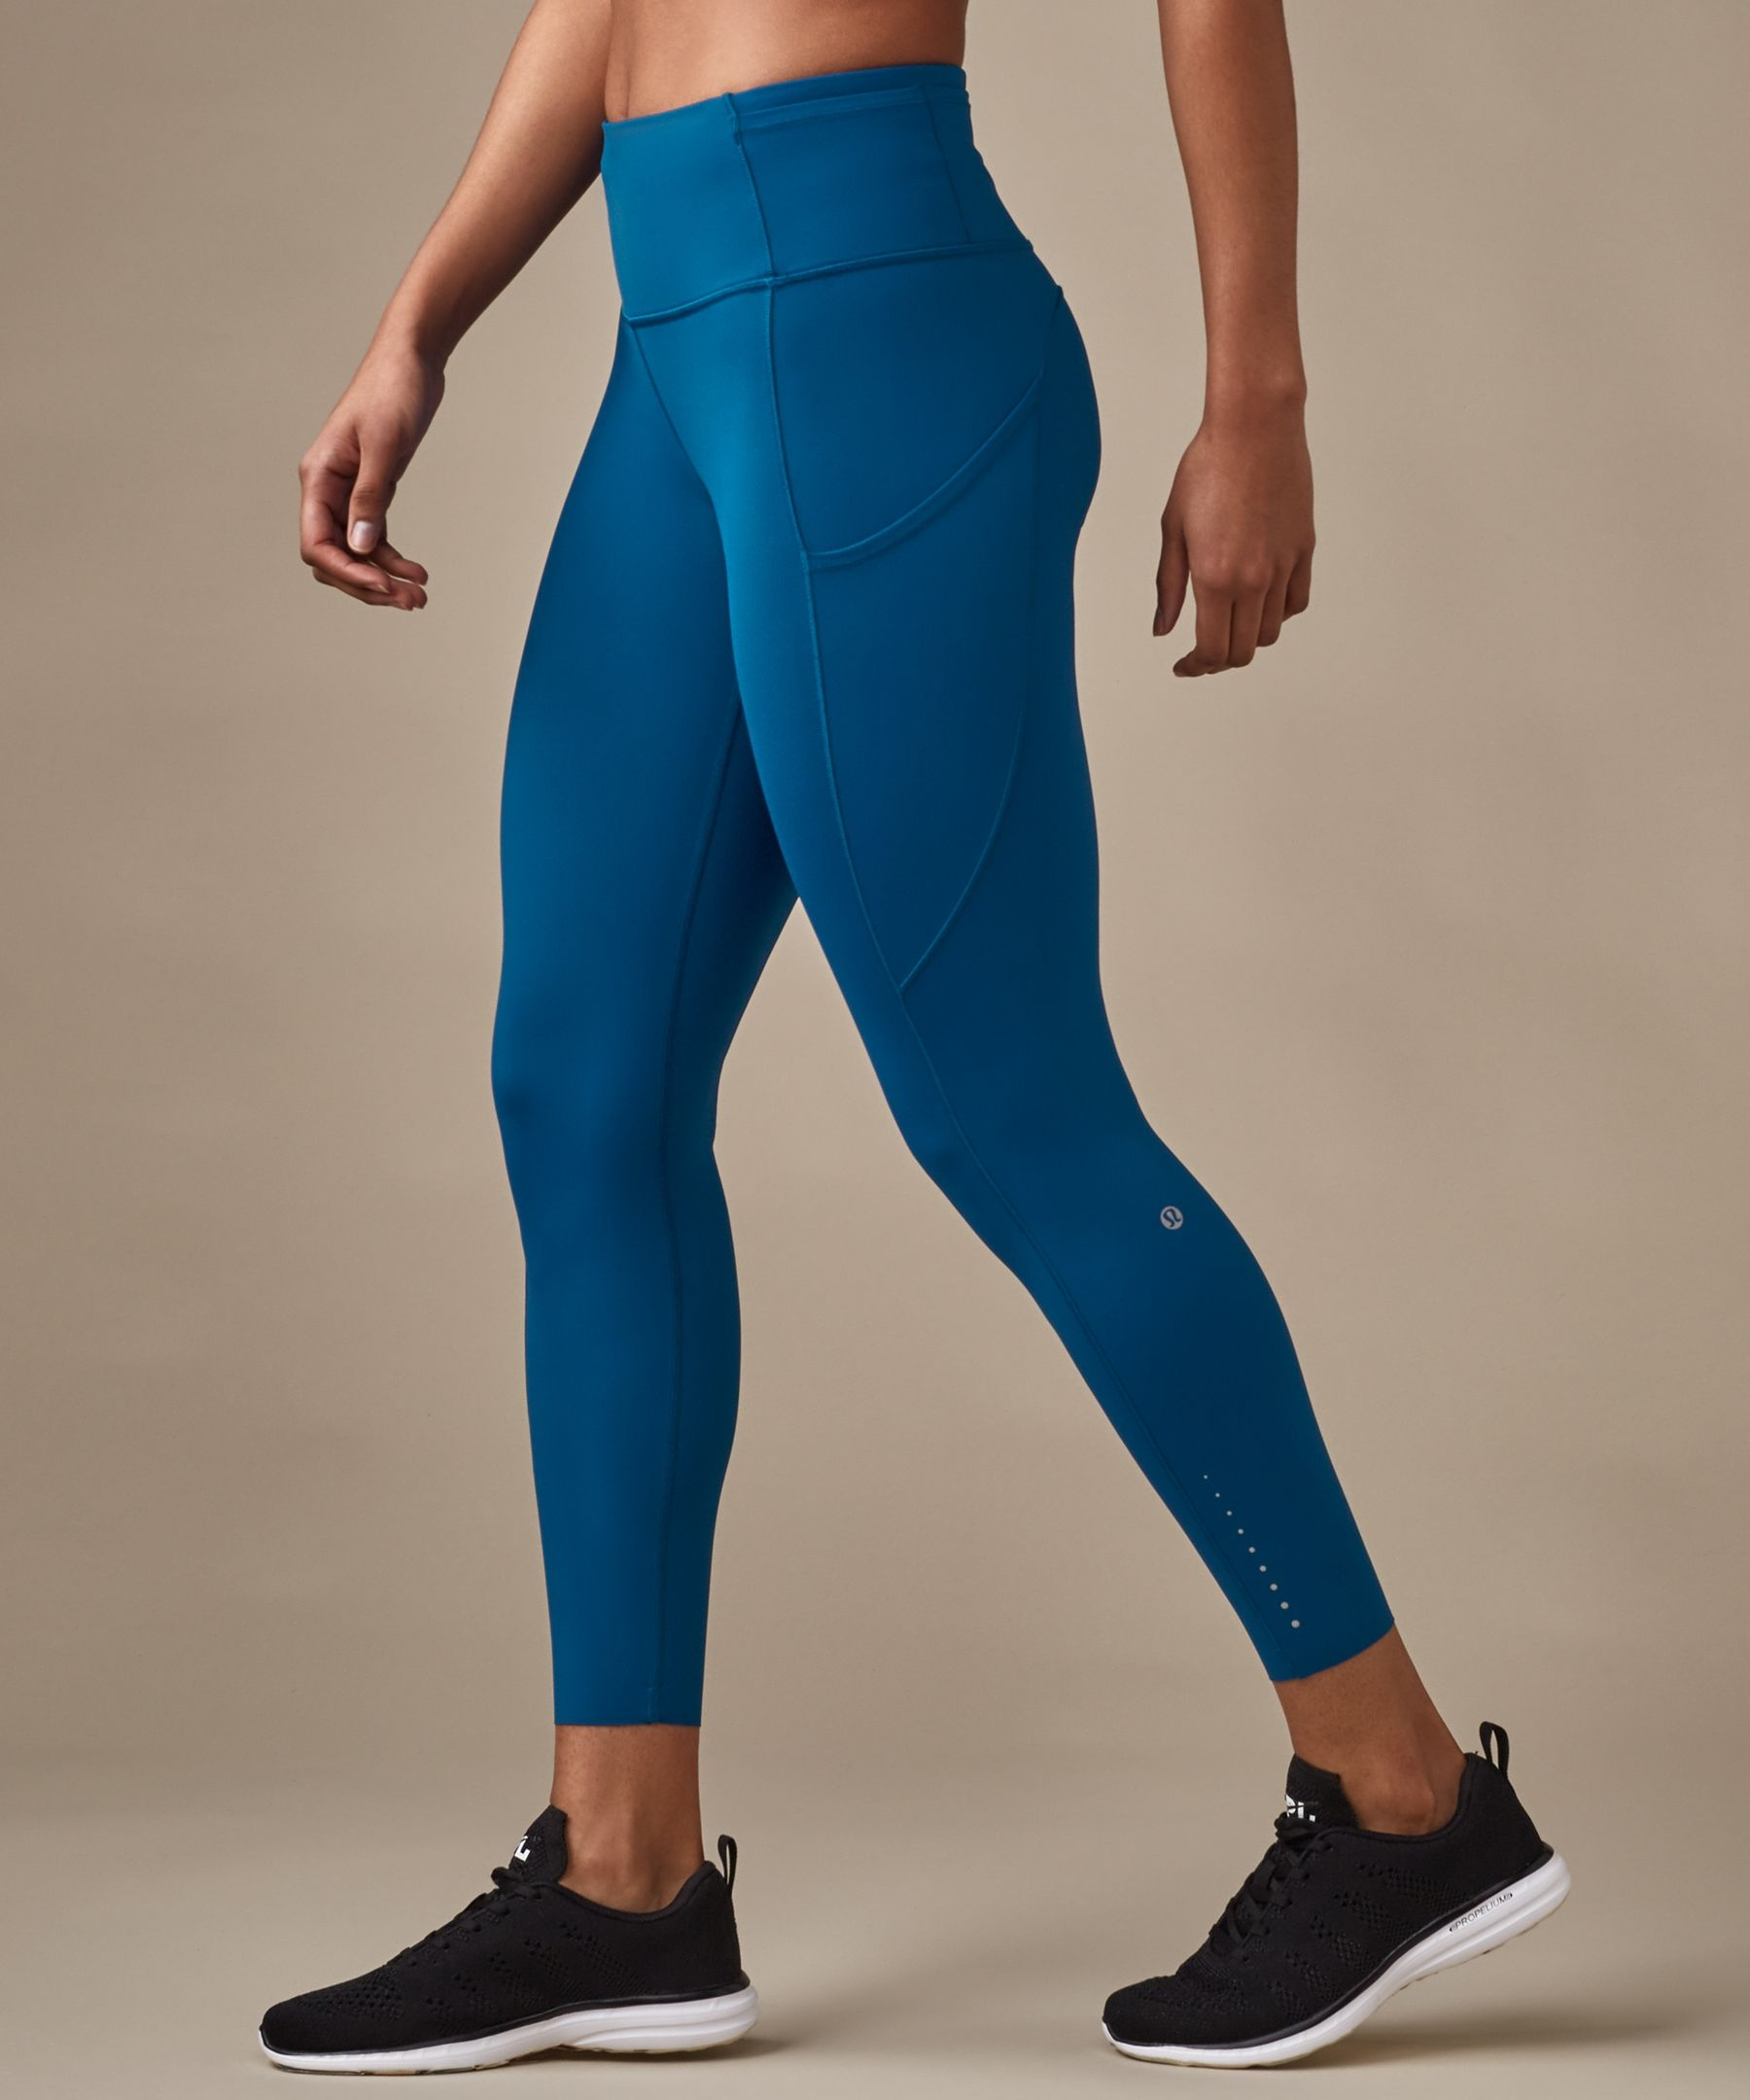 39bcd756303e3 Feel fast and free in these barely-there, sweat-wicking run tights. Fast &  Free 7/8 Tight. Lululemon.com